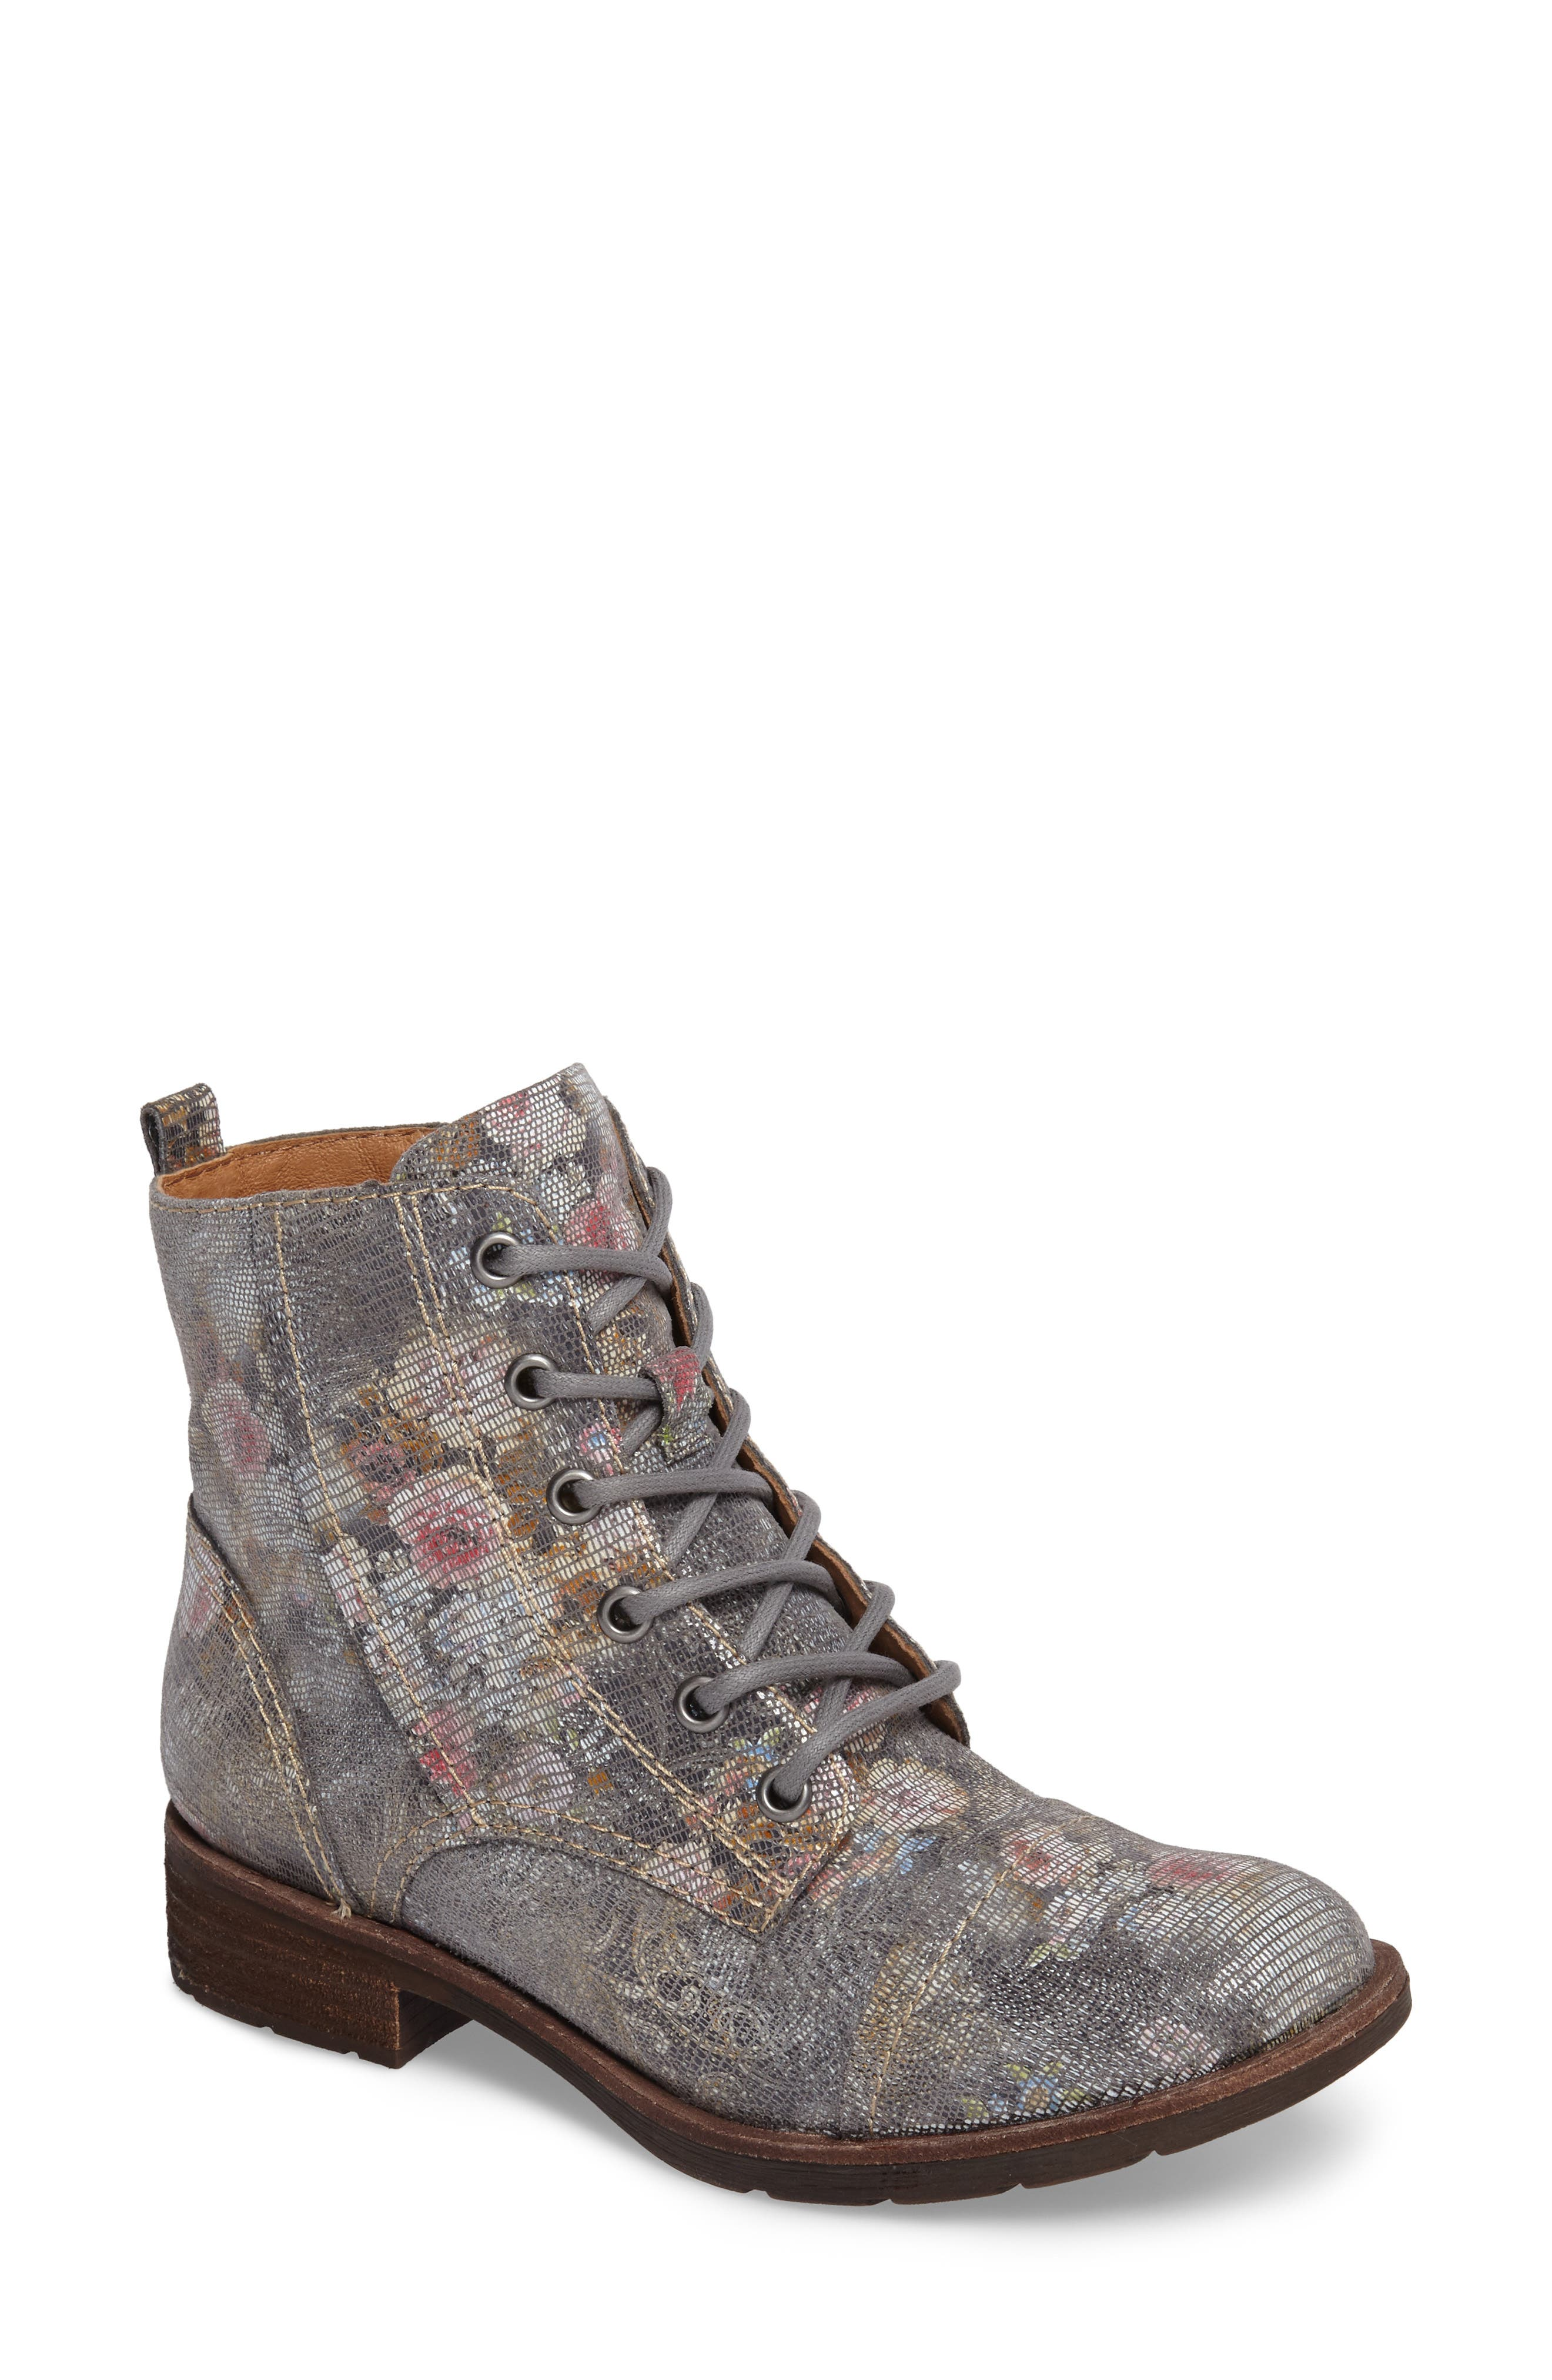 Belton Cap Toe Combat Boot,                         Main,                         color, GREY LEATHER